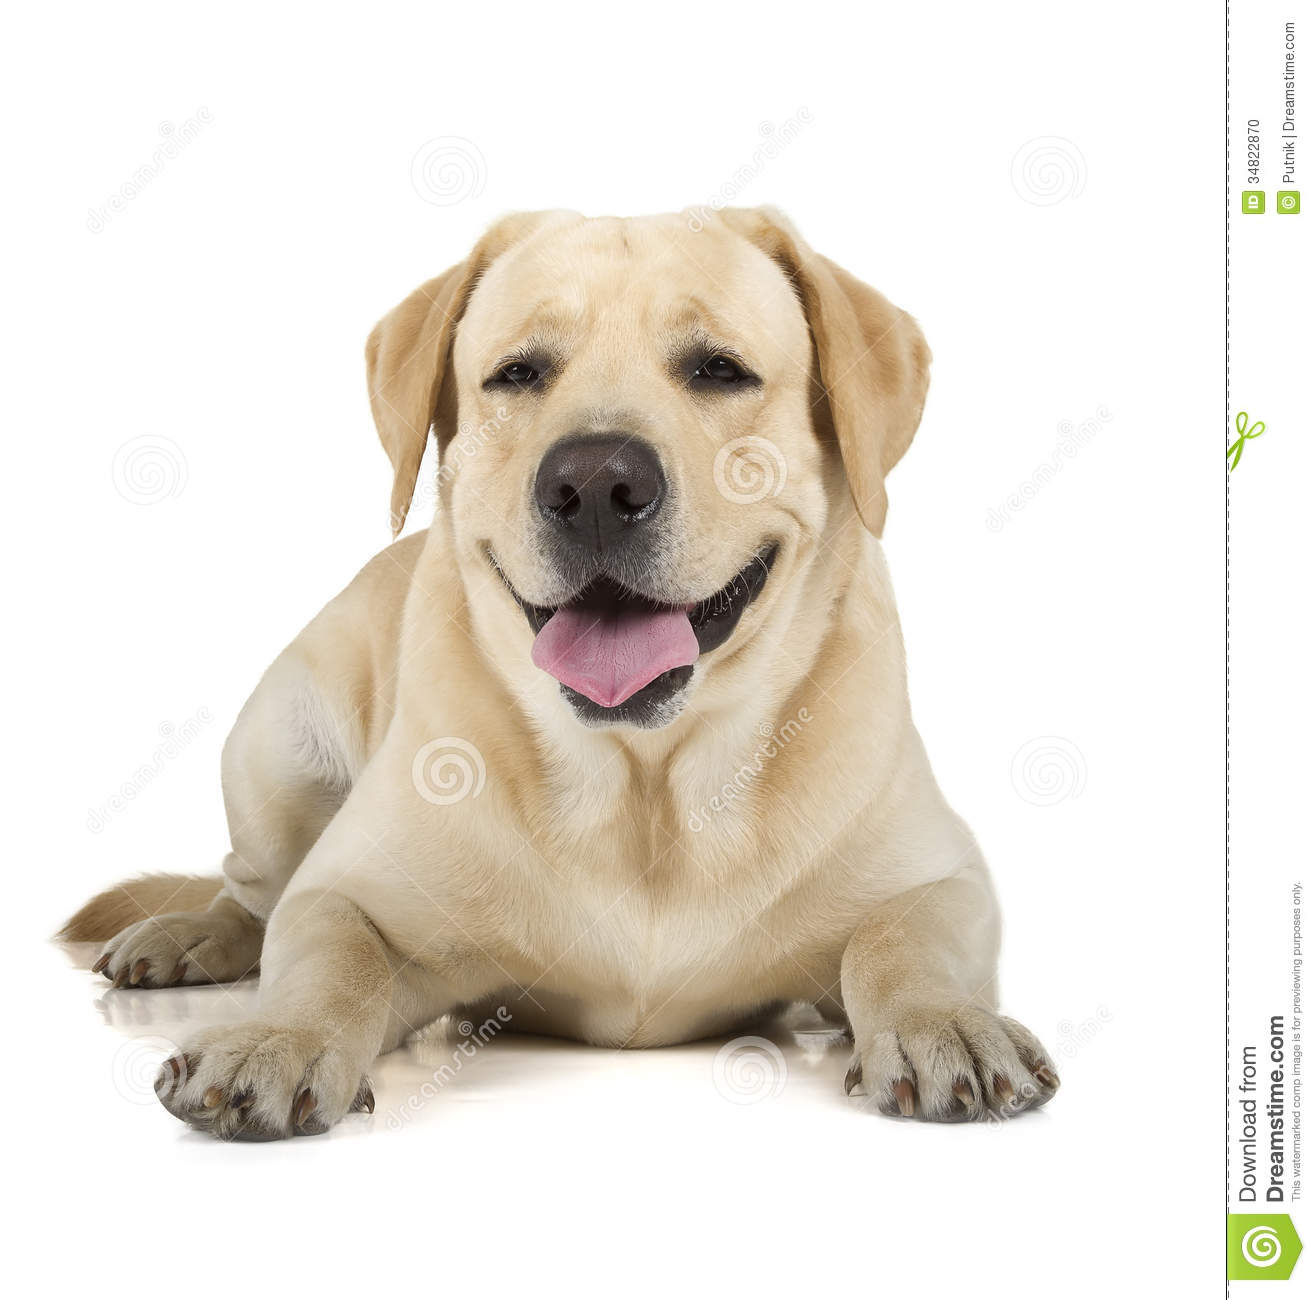 Yellow Lab Dogs For Sale Yellow Labrador Retriever Smiling Stock Photo Image Of Pedigree